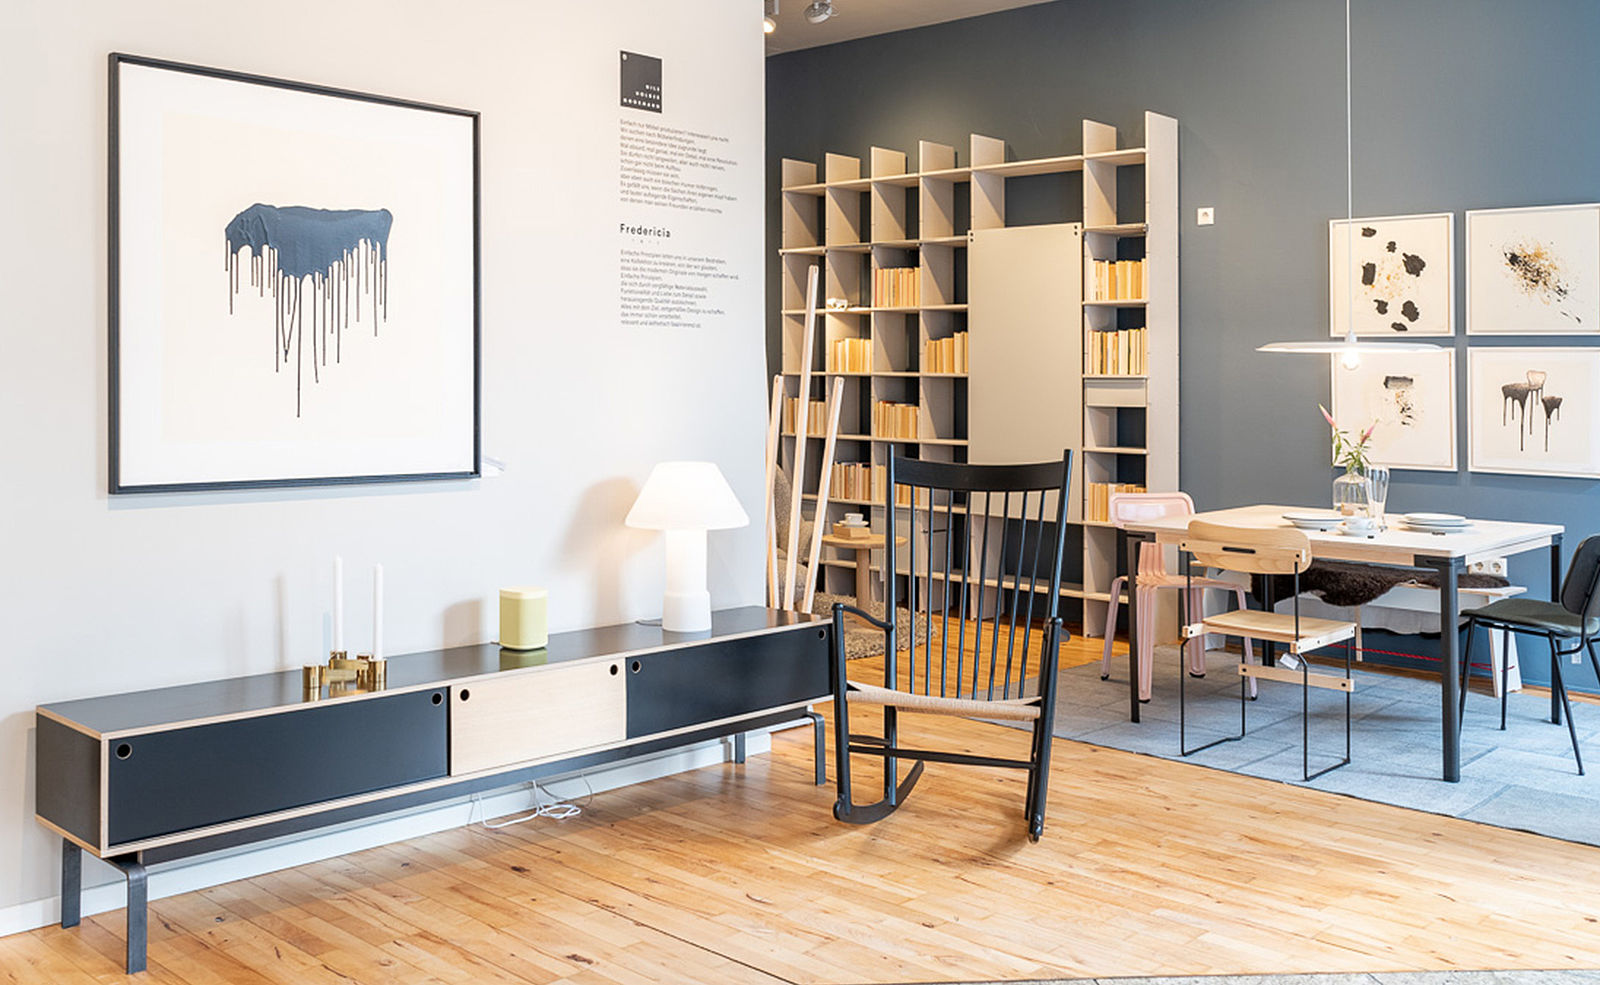 Showroon im Flagshipstore Moormann & Fredericia | POPO.DE